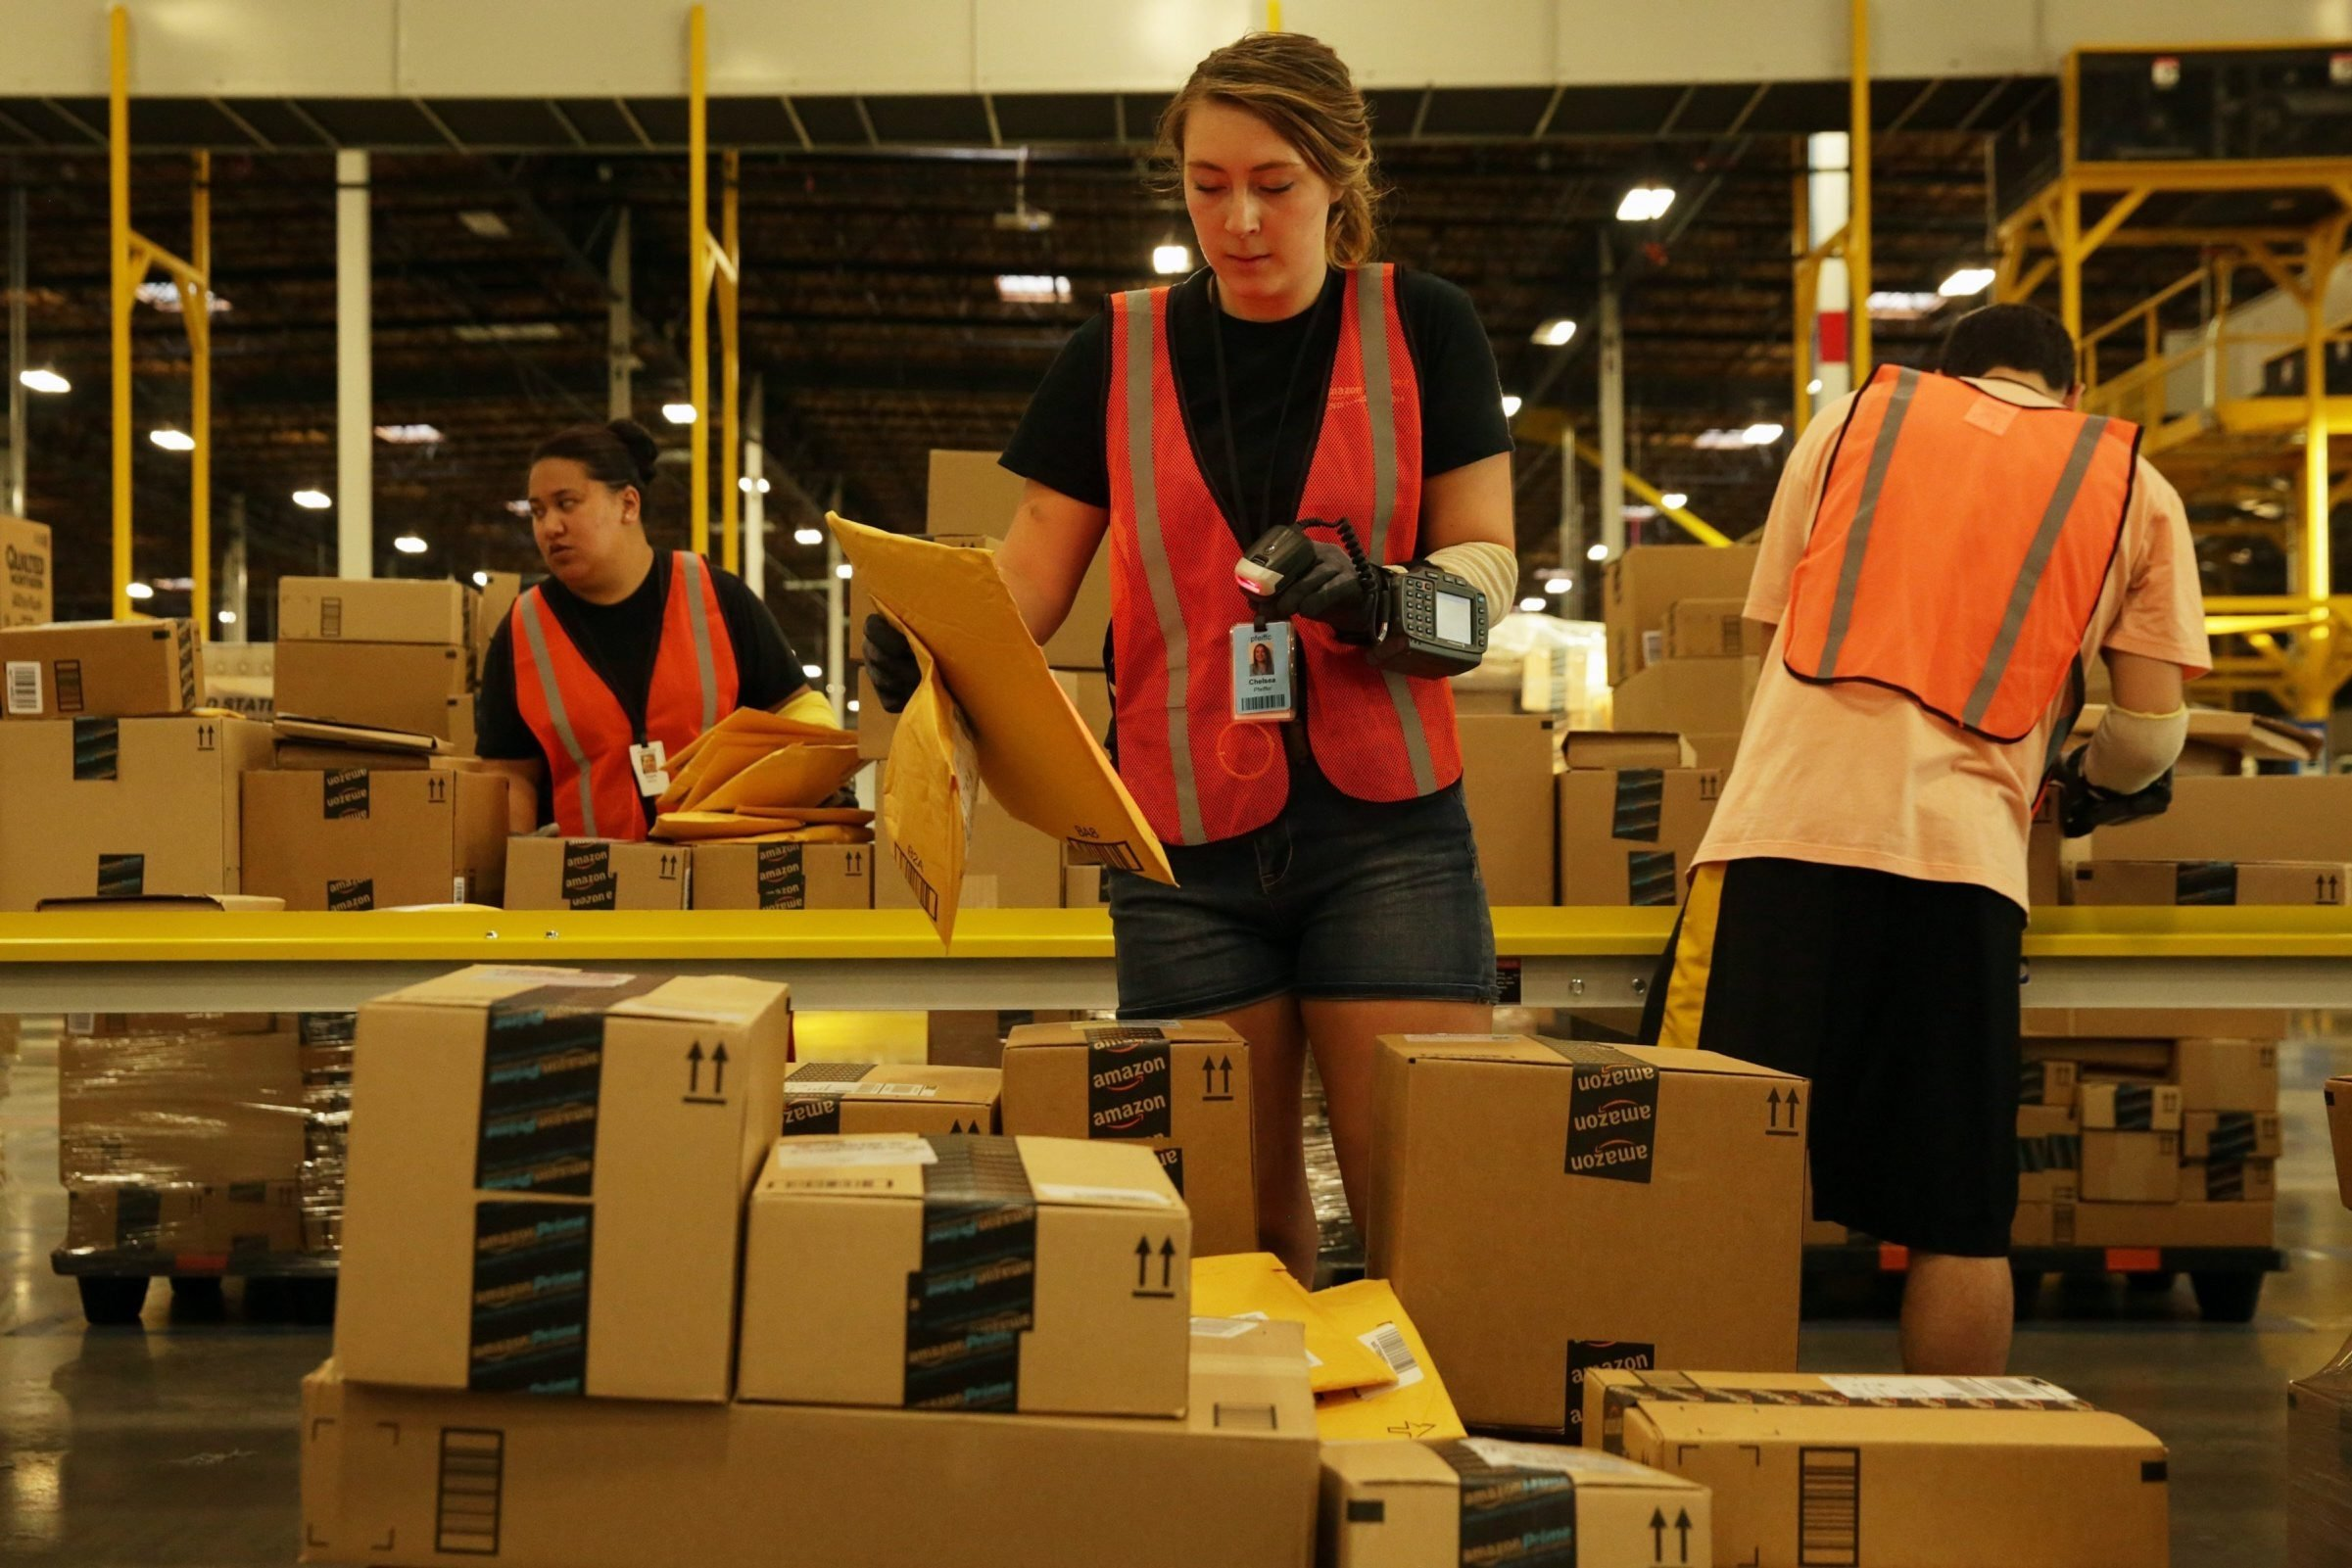 http://buffalonews.com/2014/08/10/amazon-opens-first-of-expected-15-sortation-centers/